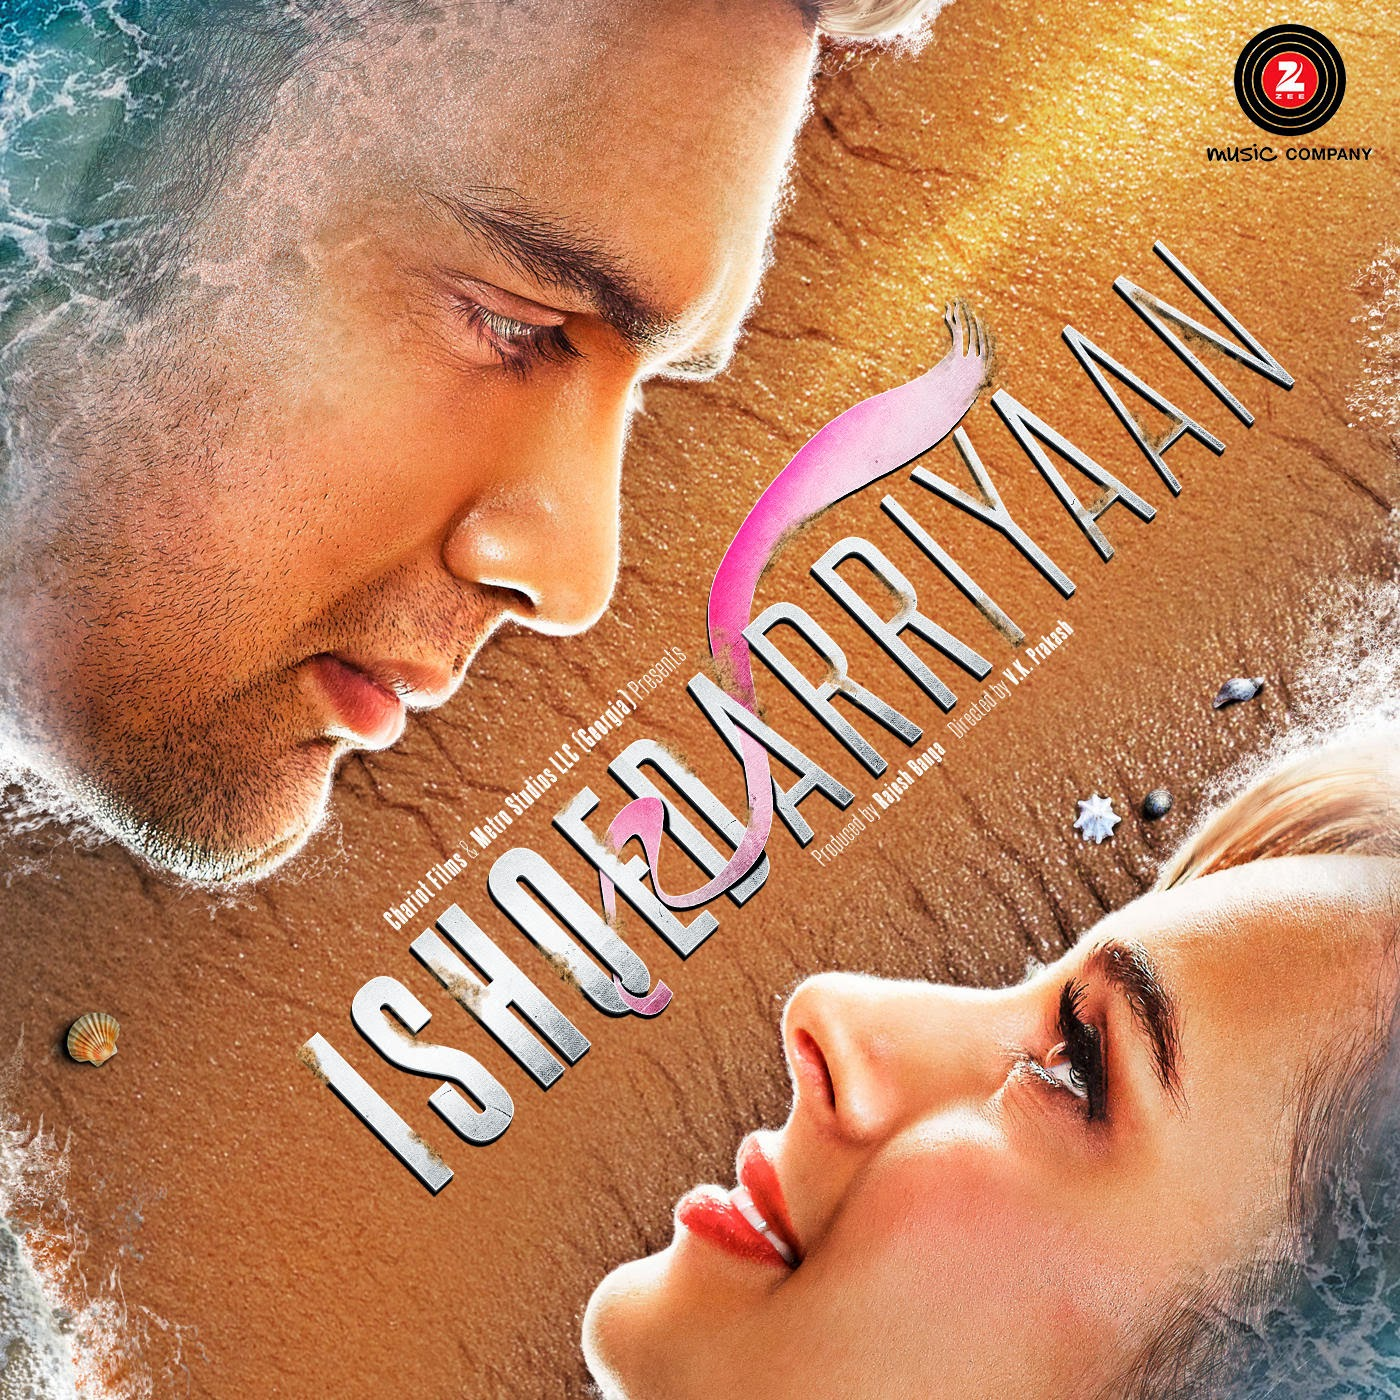 Download Mp3 Song Koi Poche Mere Dil Se: Mohabbat Yeh Lyrics - Ishqedarriyaan